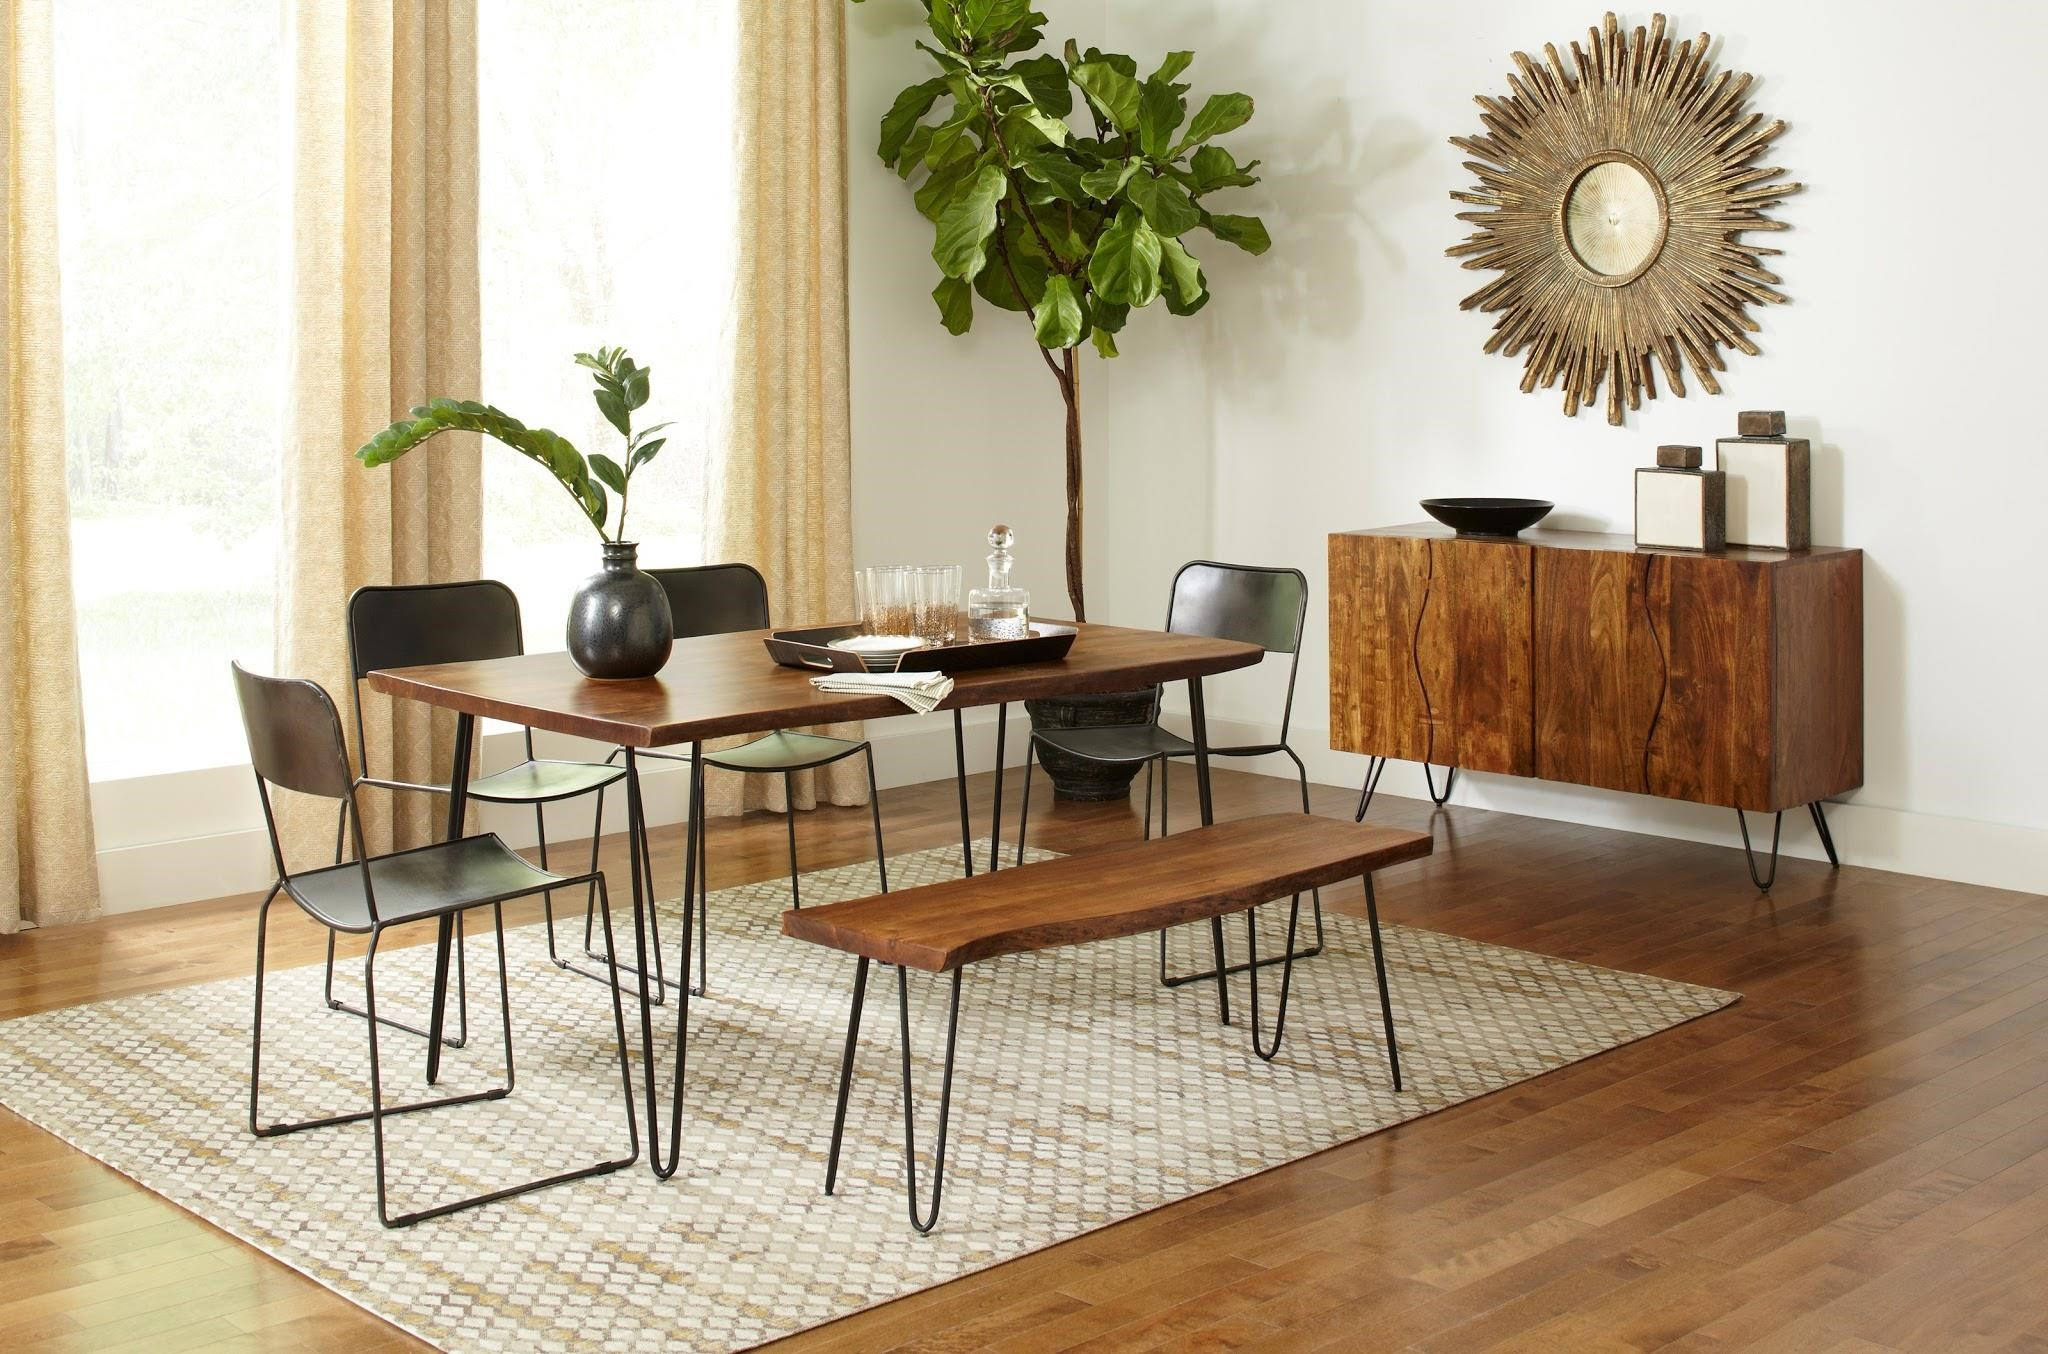 Nature's Edge 3 Piece Dining Package by Jofran at HomeWorld Furniture